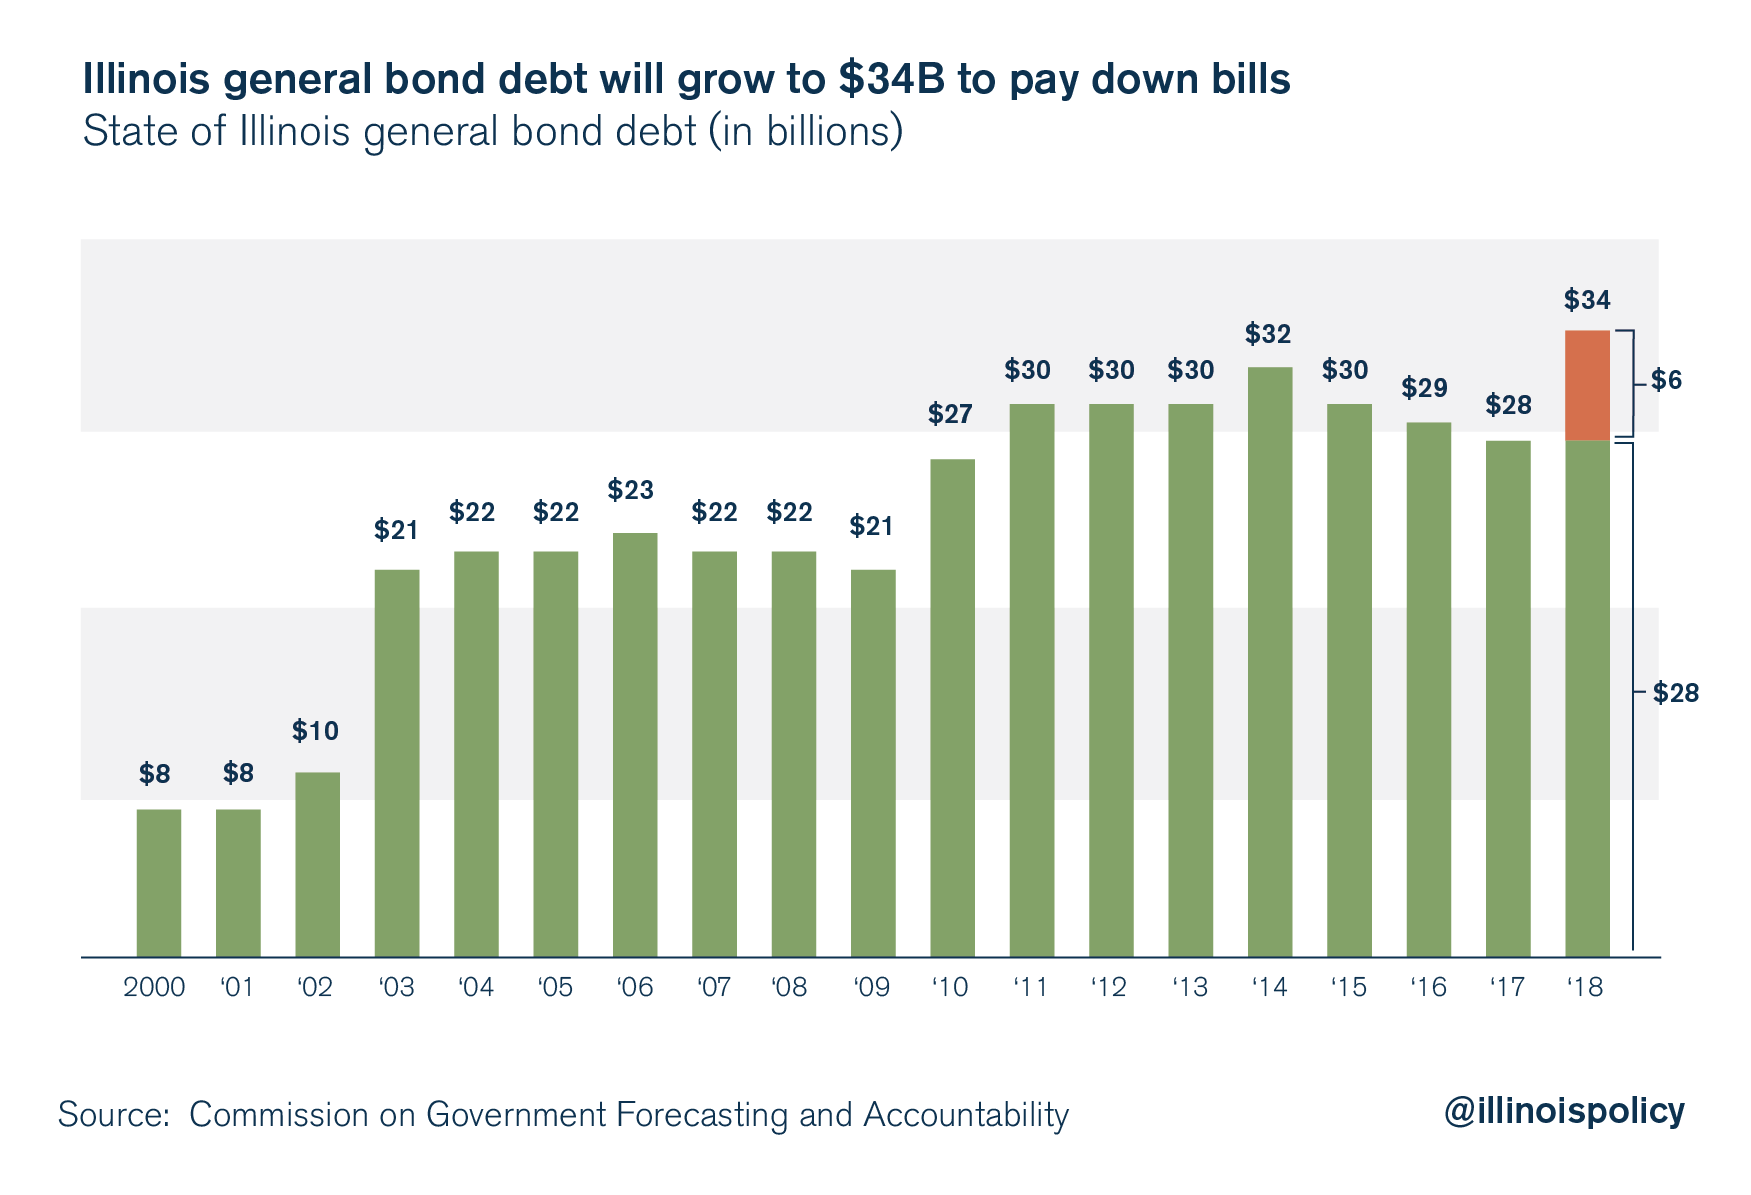 IL general bond debt